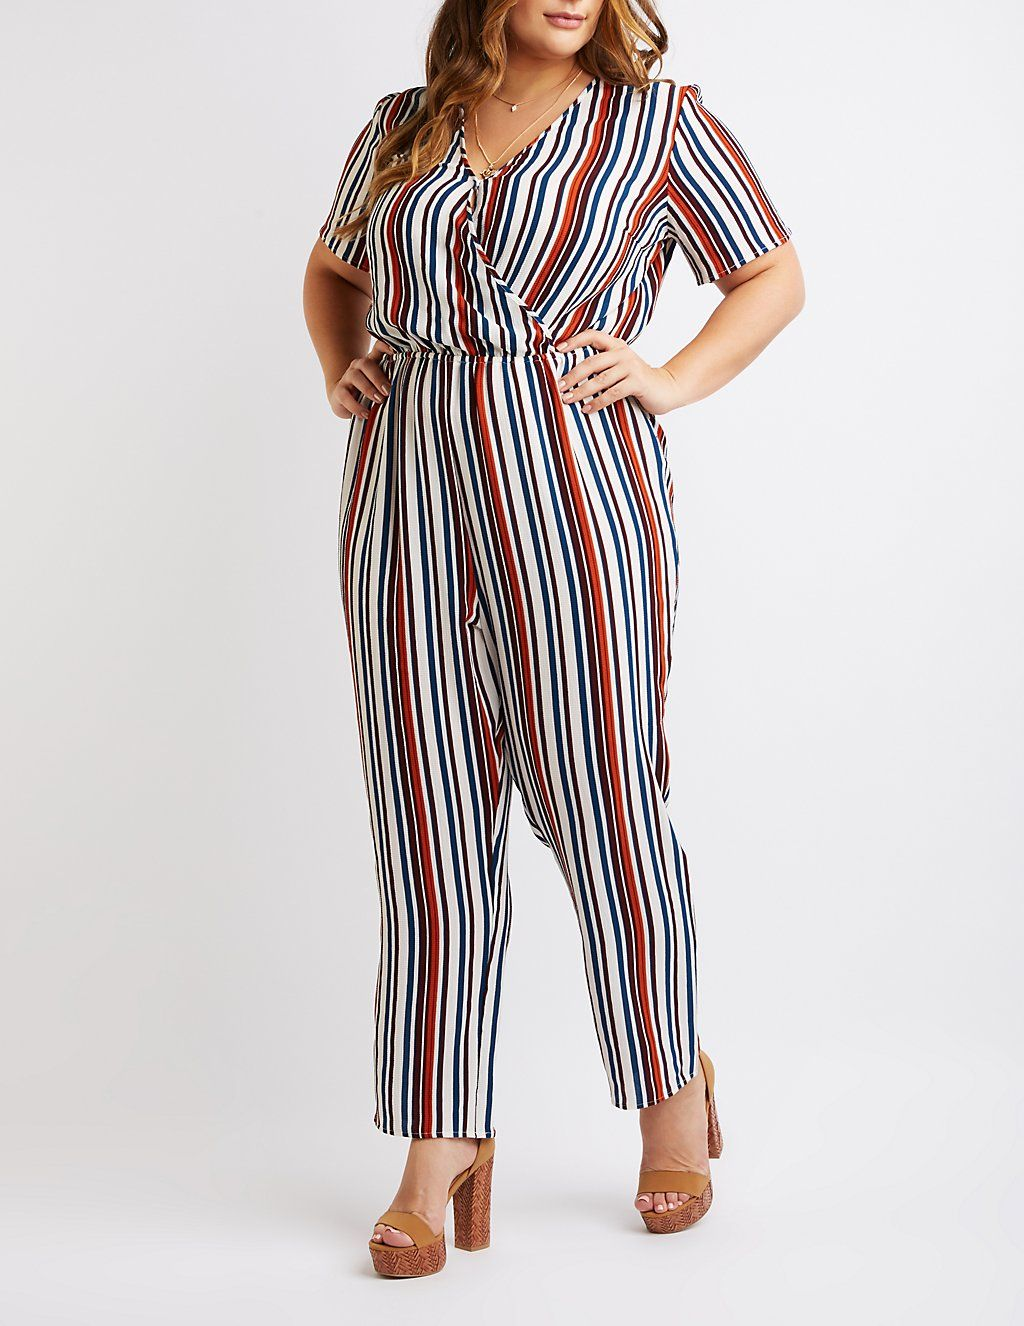 a01a2f83d19 Plus Size Striped Wide Leg Jumpsuit from Charlotte Russe